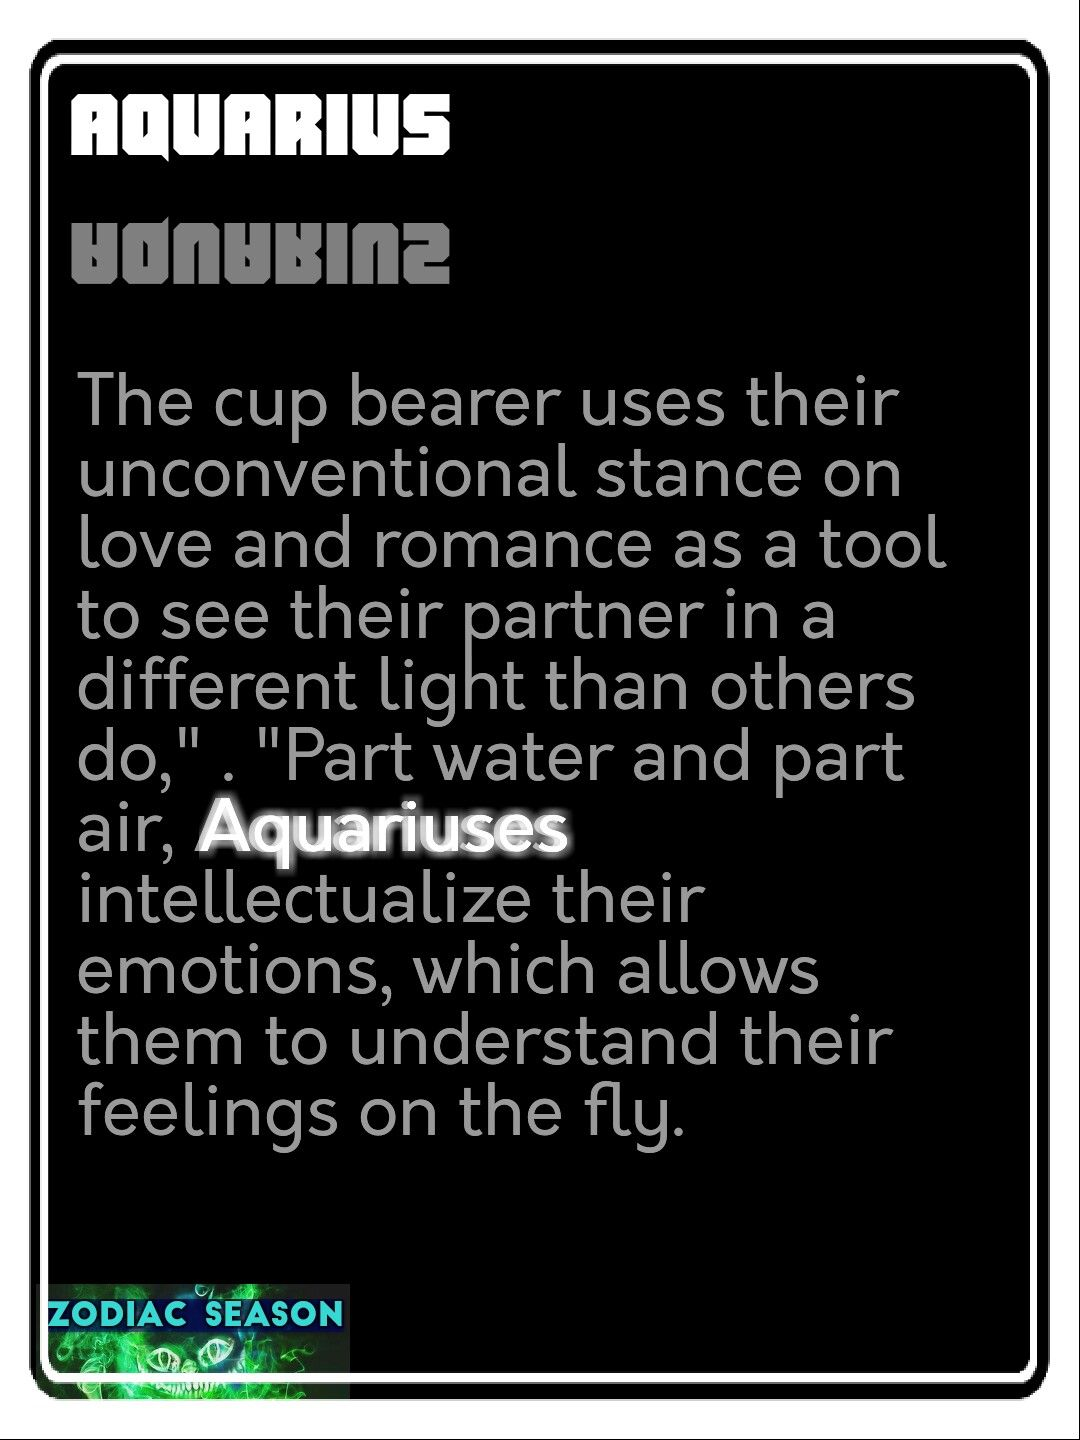 Aquarius Horoscope 12222 – Planetary Transit: